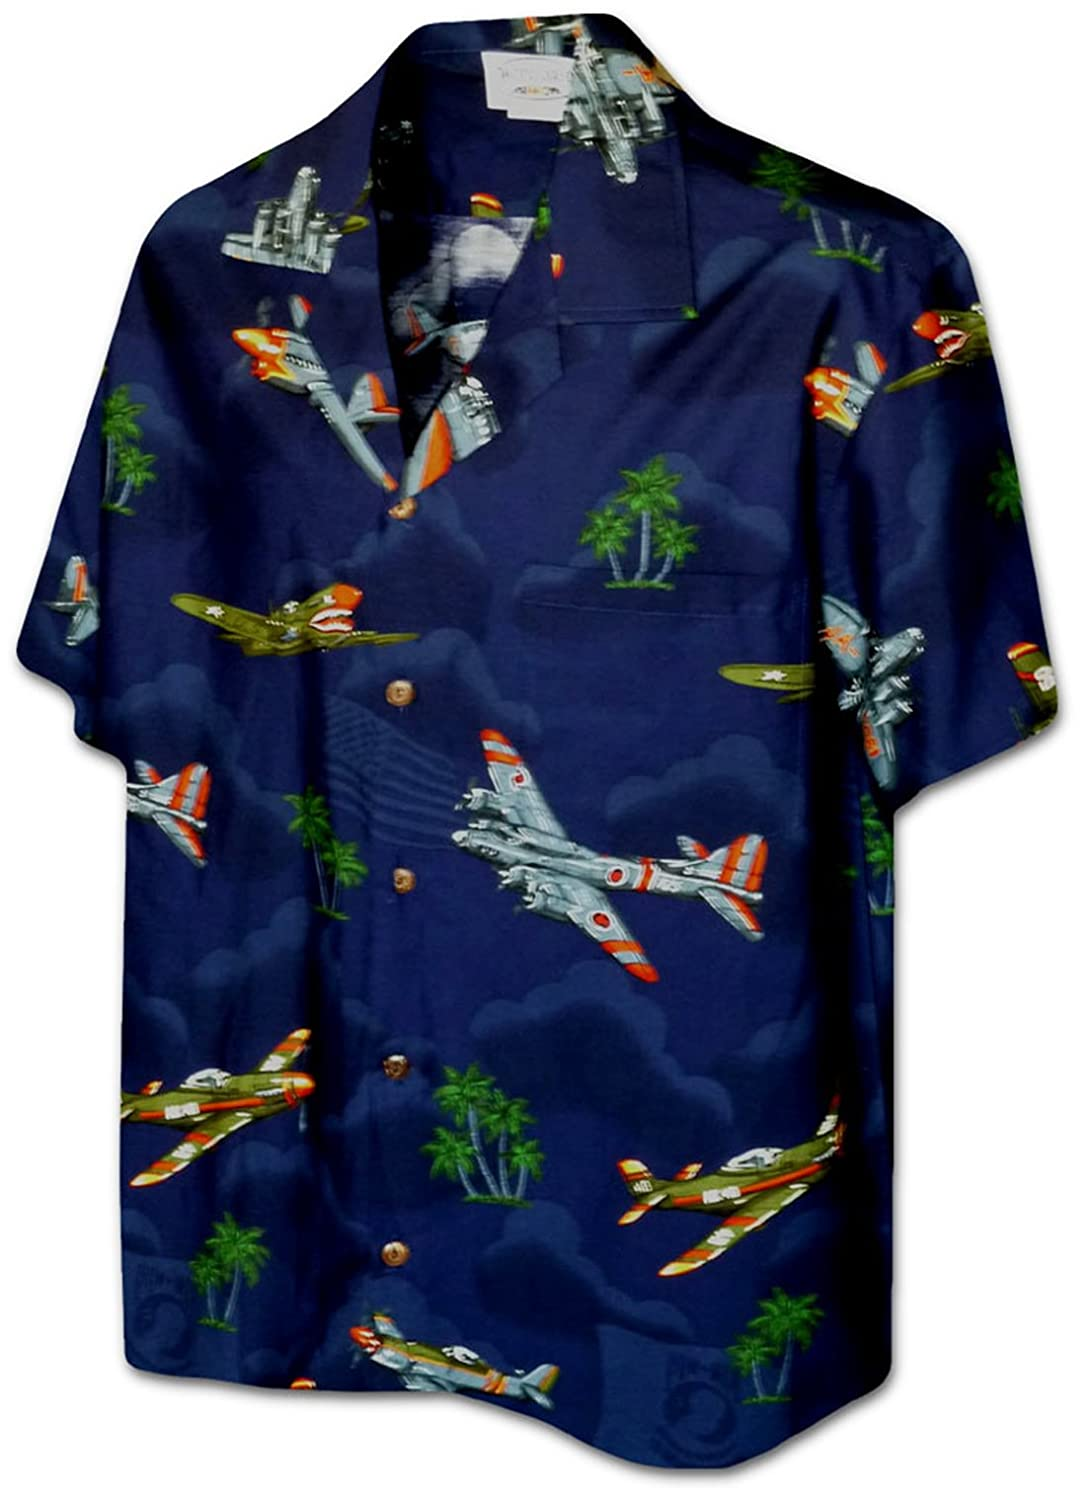 c82331e5 Pacific Legend Mens US Fighter Bomber Planes WWII Shirt Navy Blue M at  Amazon Men's Clothing store: